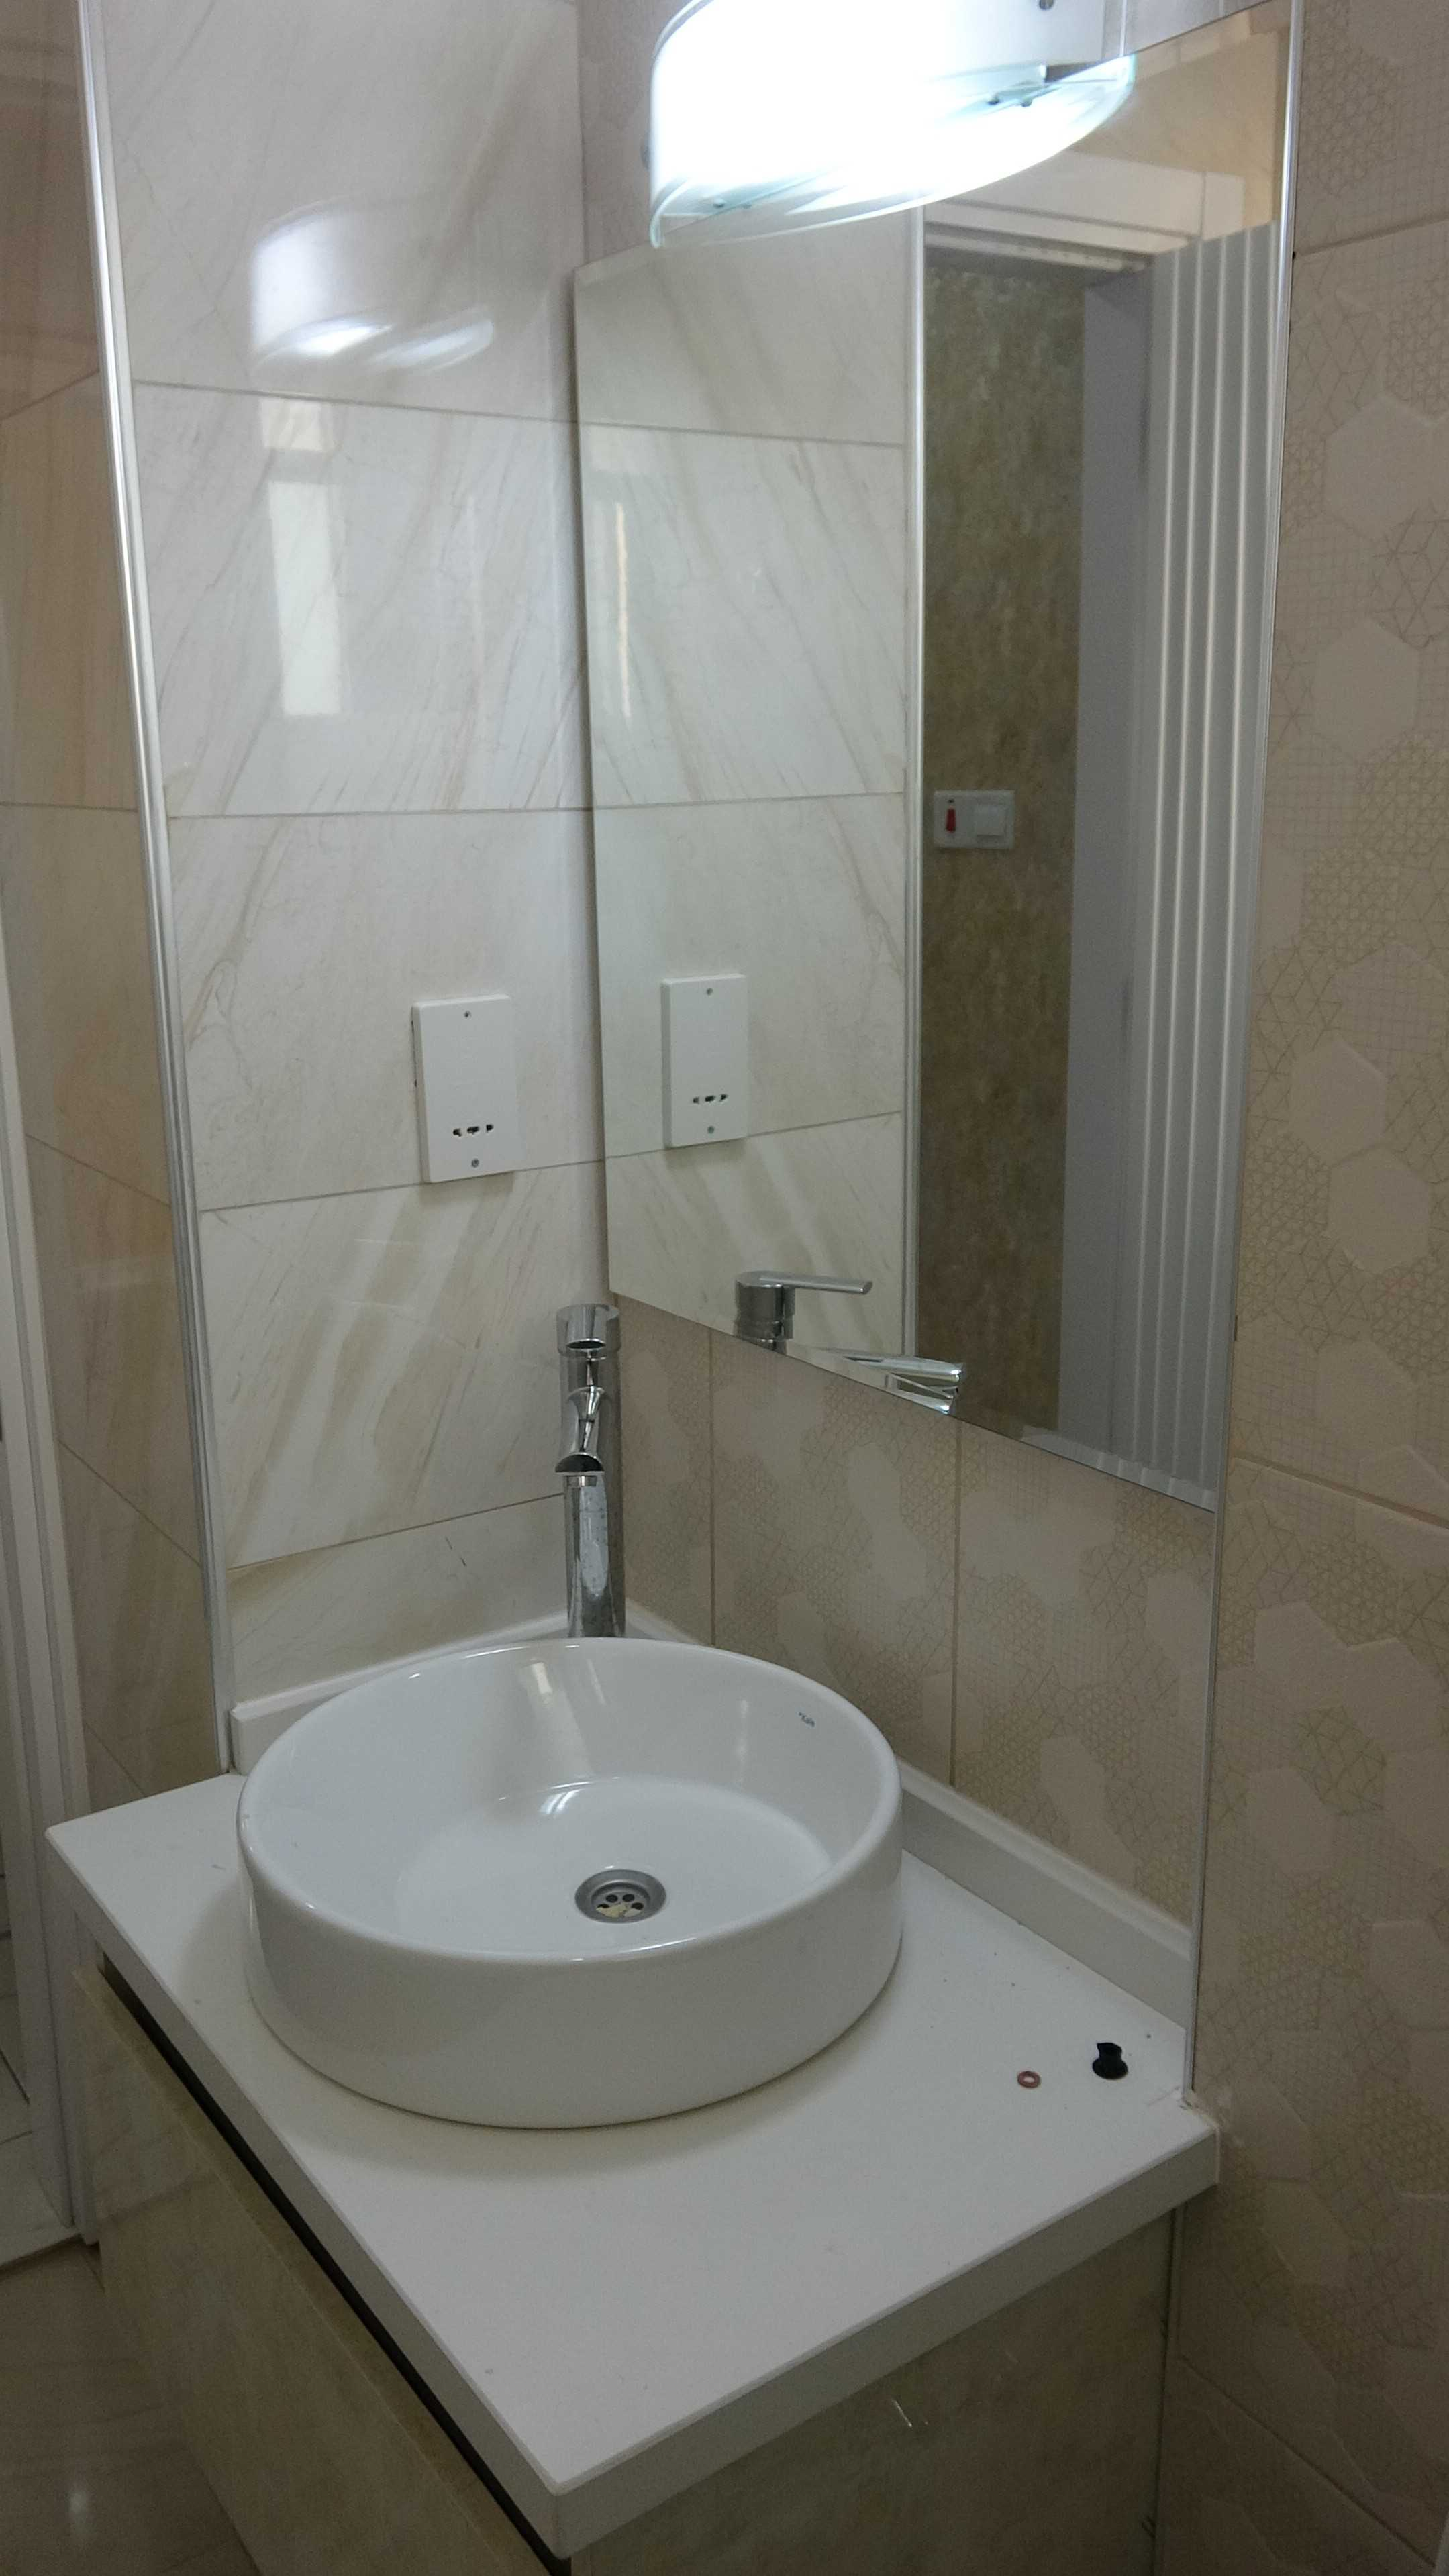 LUXURIOUS-TWO-BEDROOM-APARTMENT-IN-CENTRAL-KYRENIA--KY807B